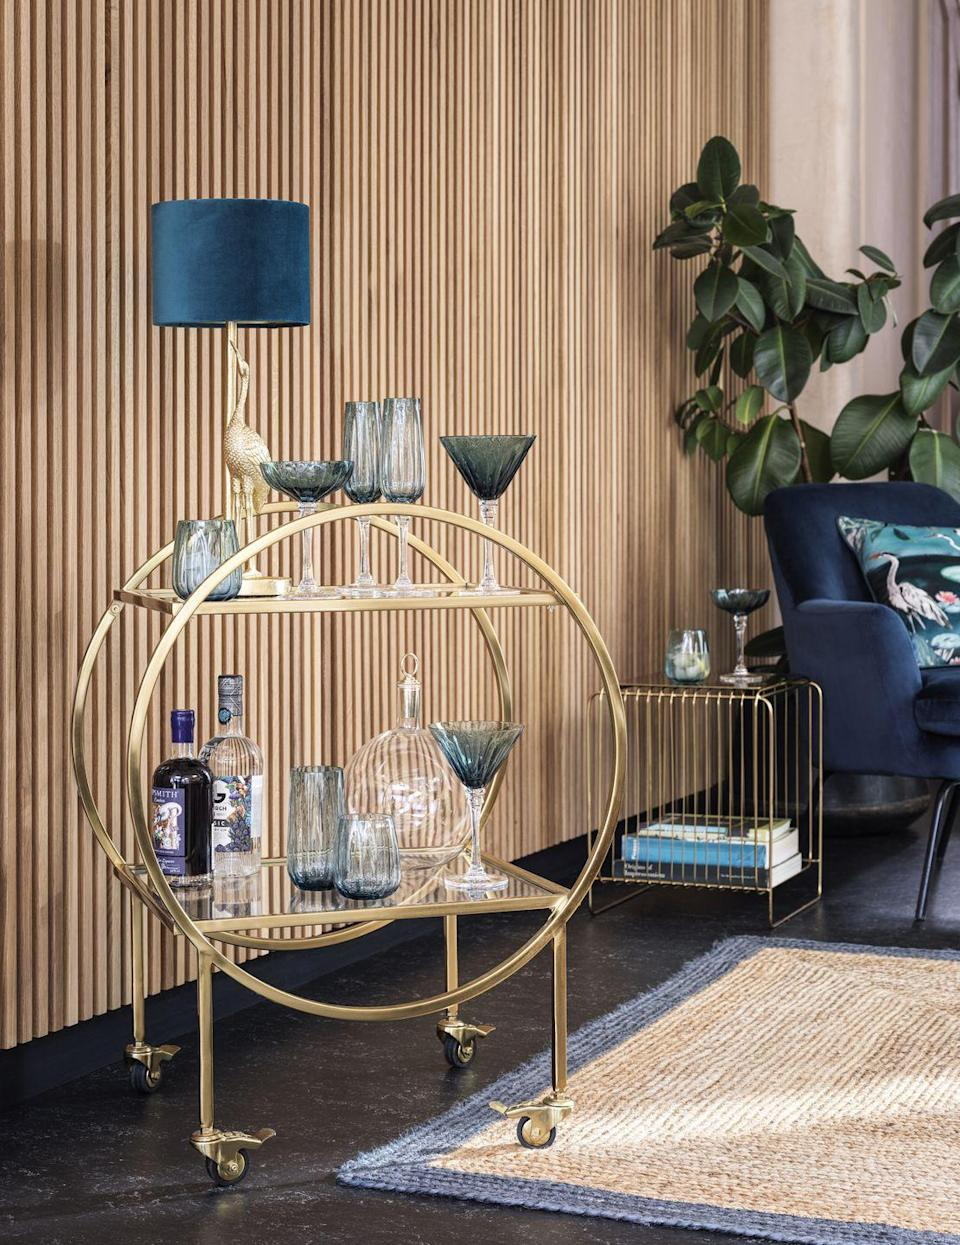 <p>Show off your pretty glasses with this on-trend gold circular drinks trolley. With hopes we can all entertain inside during the winter months, there's nothing better than wheeling out this trolley to impress guests. </p><p>'As people have embraced more adventurous homemixology with their drink choices over the past year, we've seen a huge increase in sales of barware and stemmed glass styles,' says Kate Gibson<br>Kitchenshop, Buying Manager. </p>